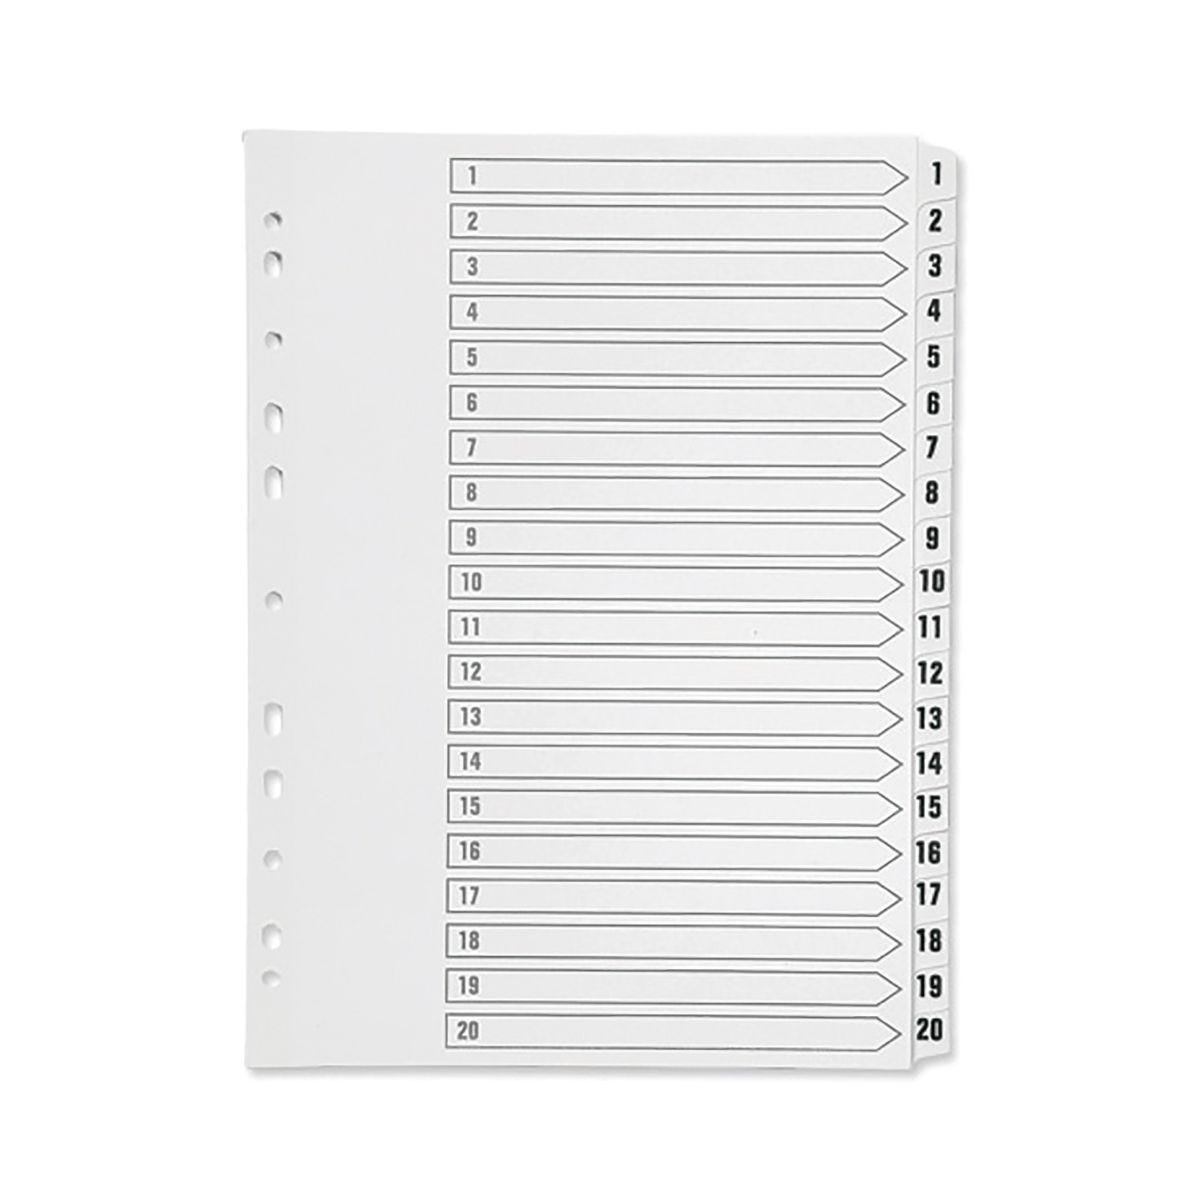 Q-Connect 1-20 A4 Multi-Punched Reinforced Divider White